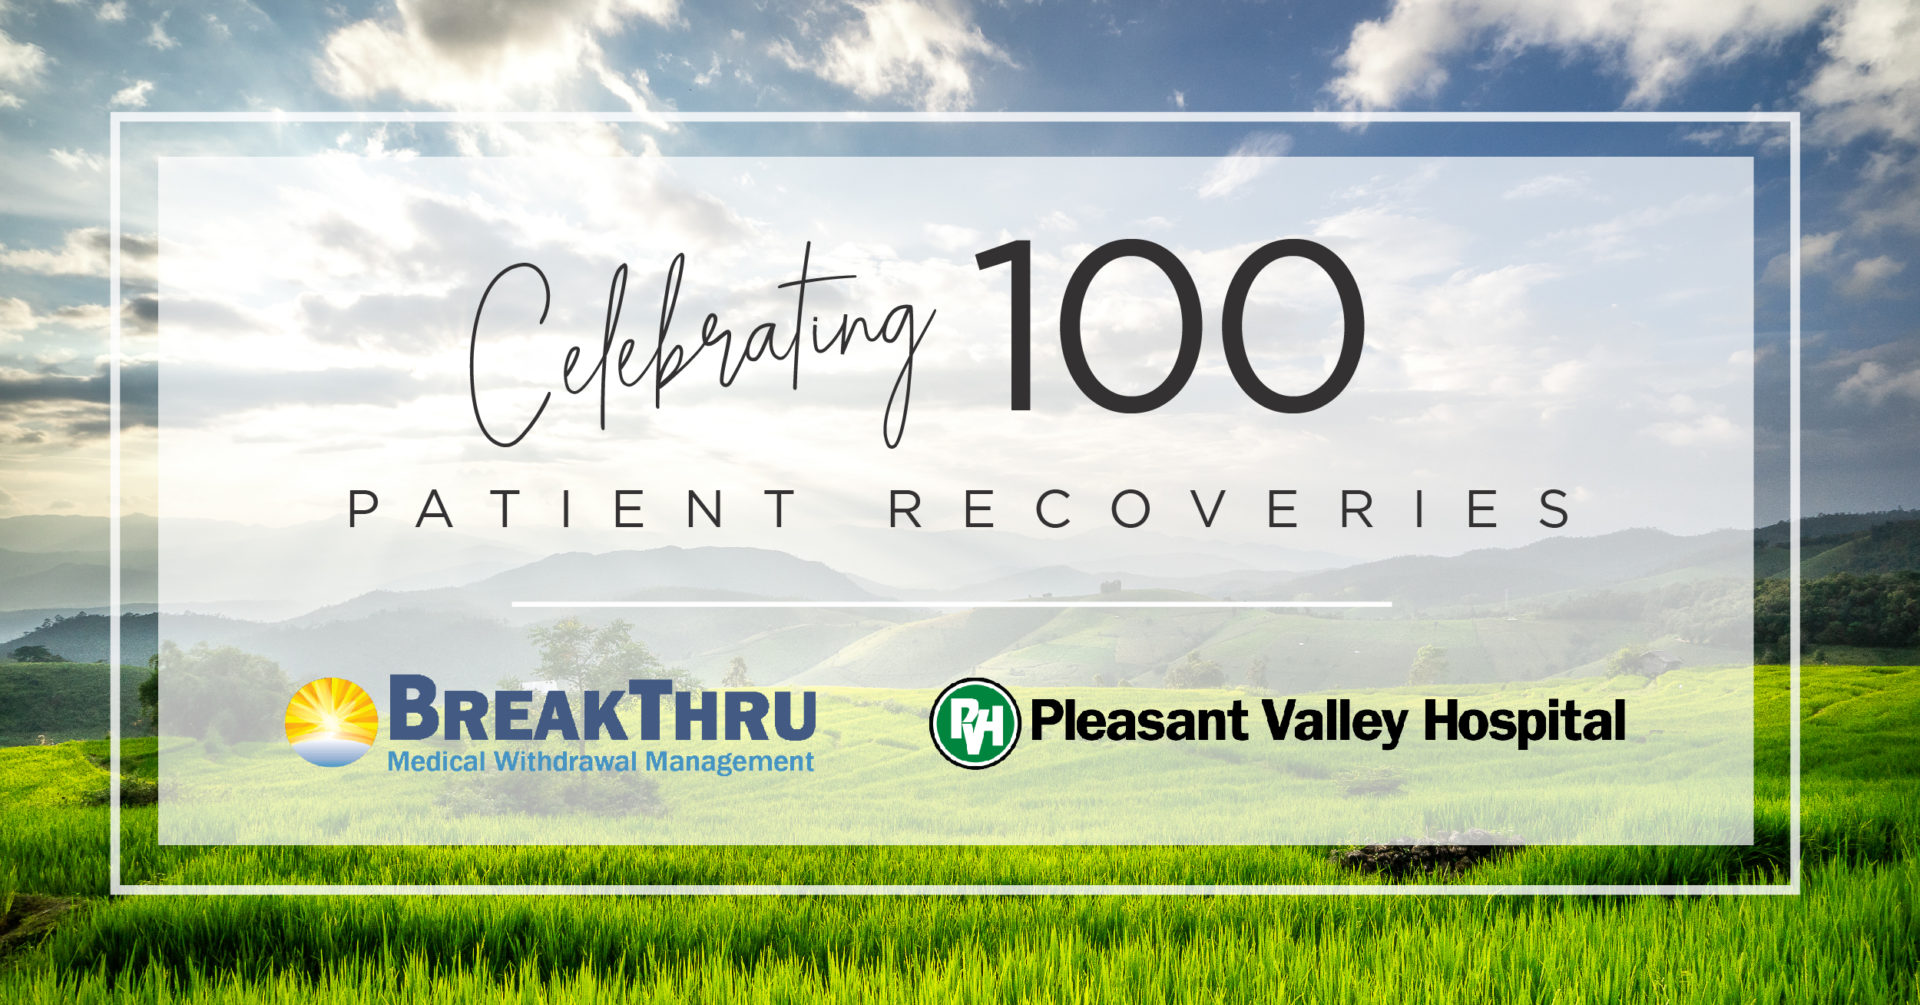 celebrating 100 patient recoveries breakthru medical withdrawal management pleasant valley hospital